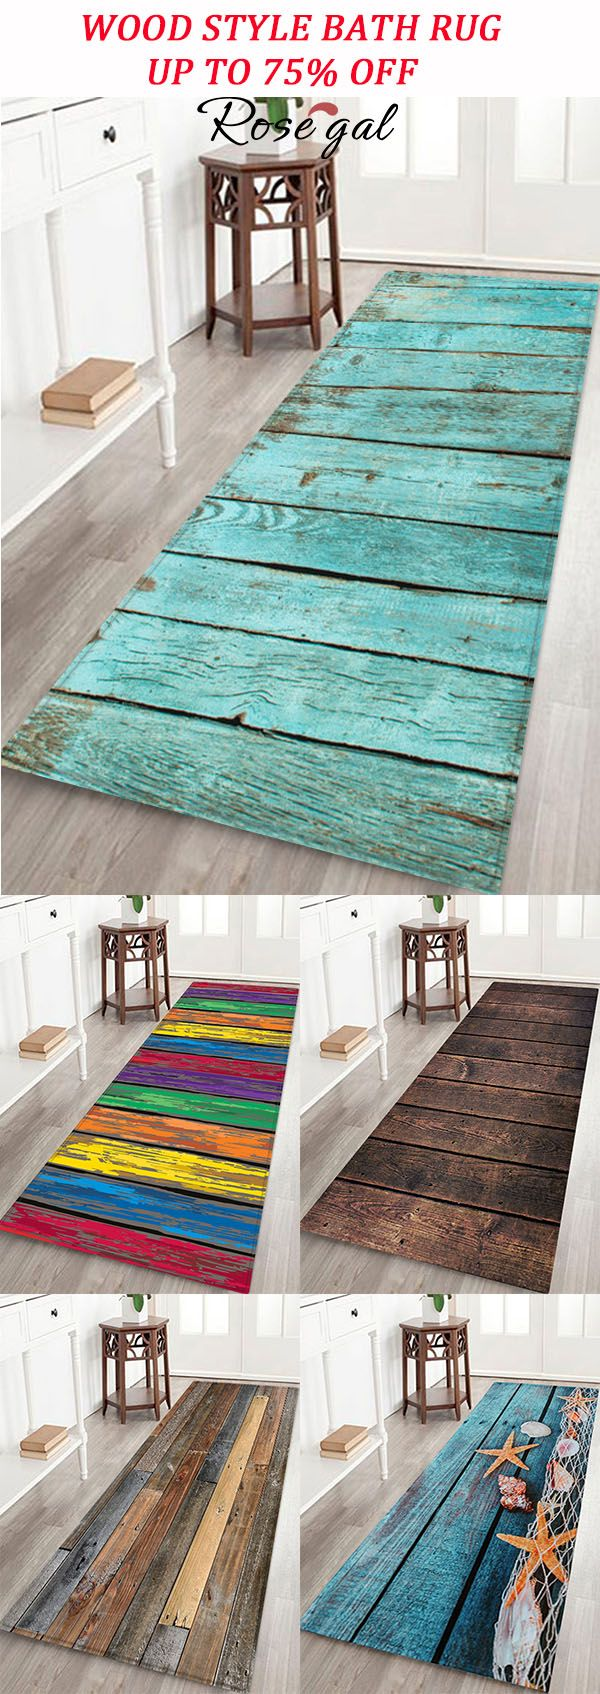 Wood Style Bath Rug Decoration Ideas For Home Apartment Rosegal Rug Round Rug Living Room Round Carpet Living Room Rugs In Living Room [ 1694 x 600 Pixel ]